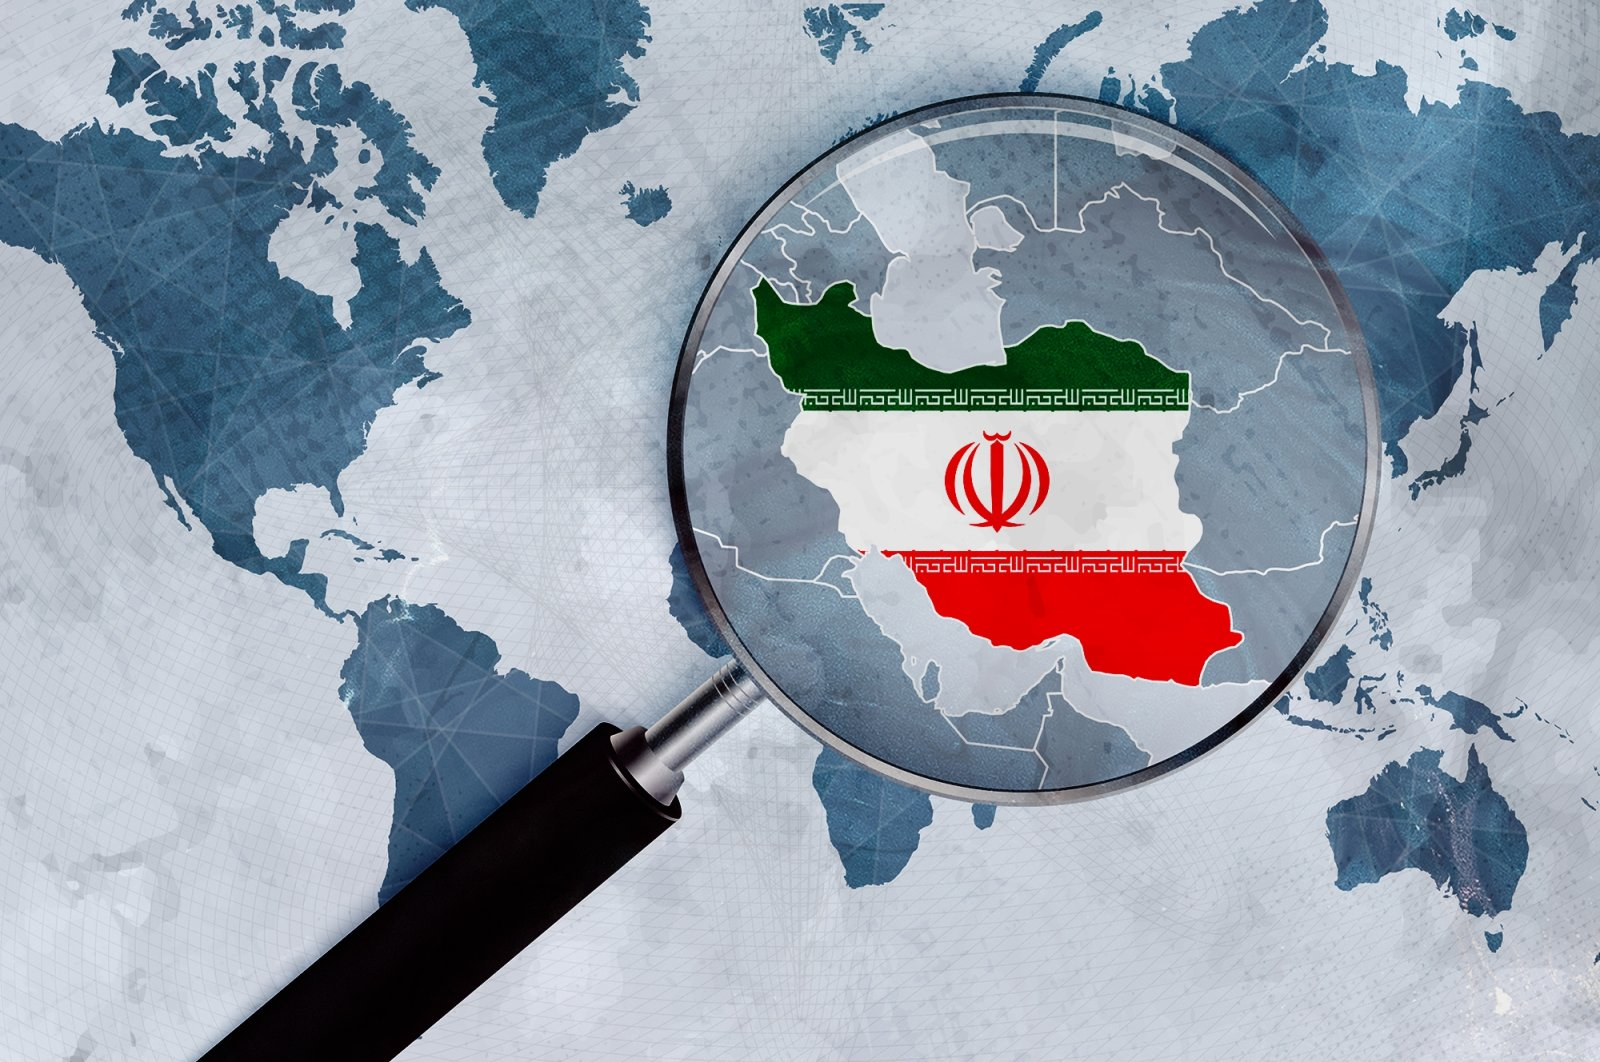 An illustration shows a magnifying glass zooming in on the flag of the Islamic Republic of Iran depicted in the shape of the country on a world map. (Photo by Shutterstock)